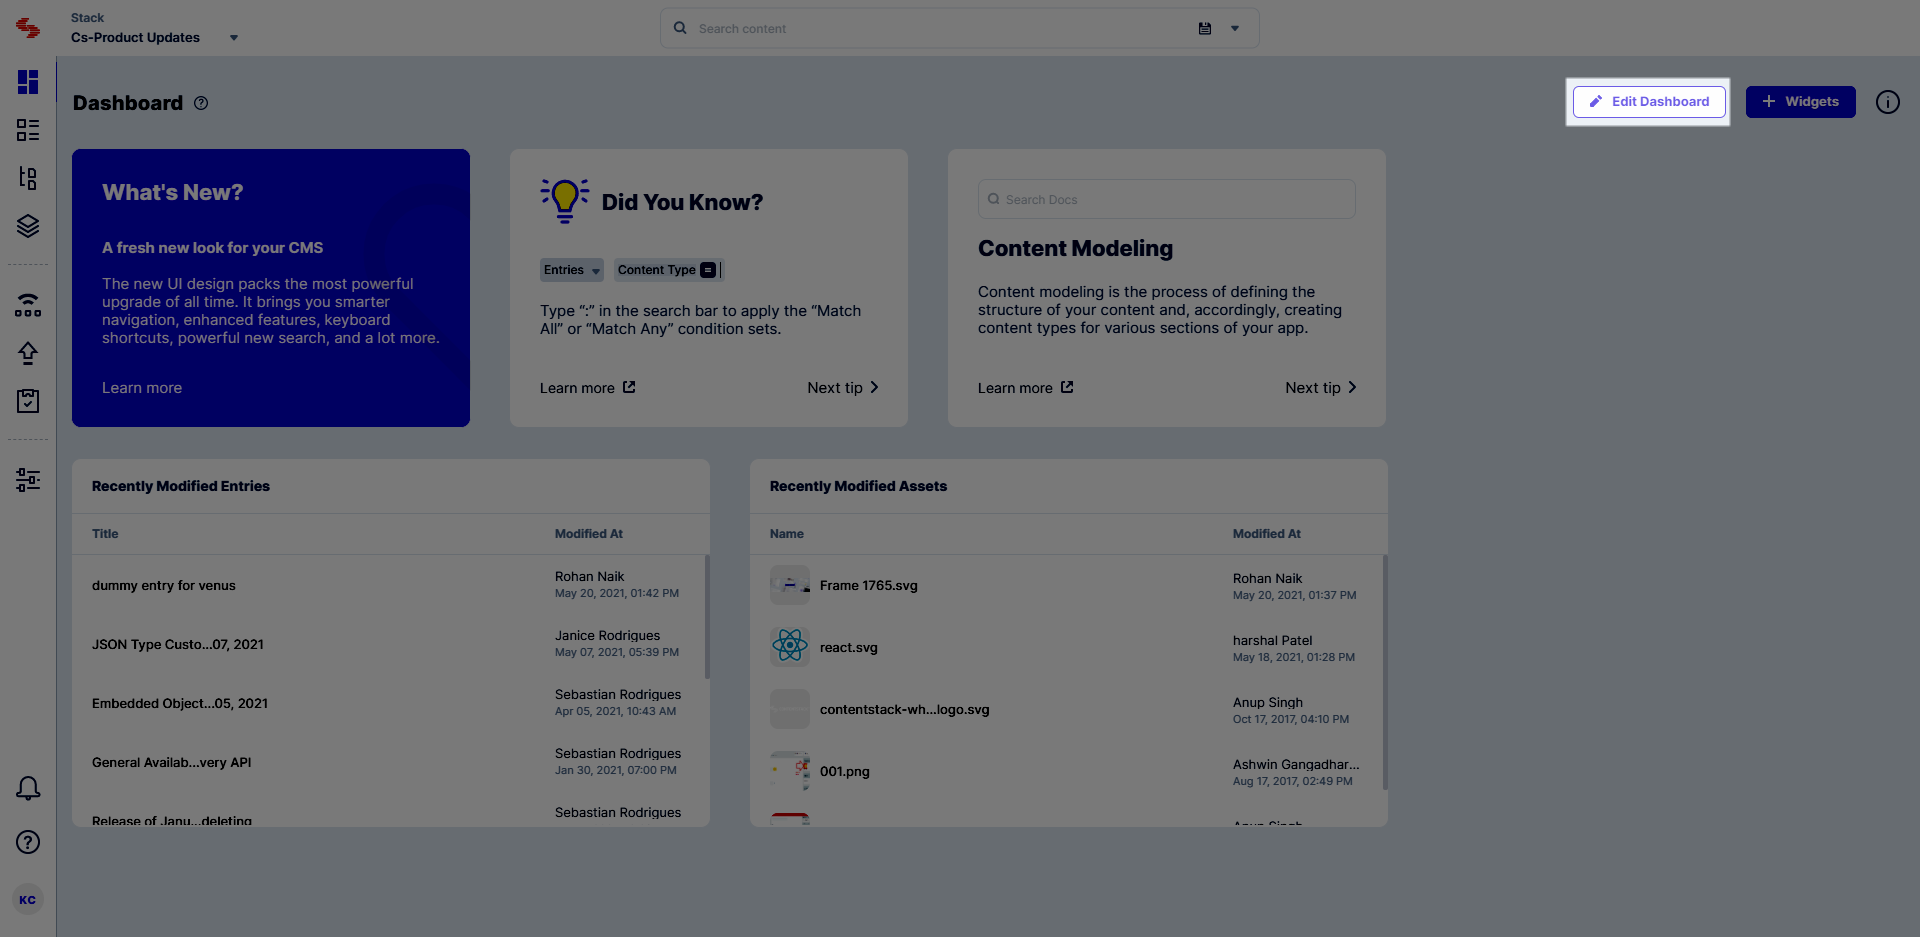 Customize_Your_Dashboard_View_Show-Hide_Dashboard_Widgets_setting_highlighted.png